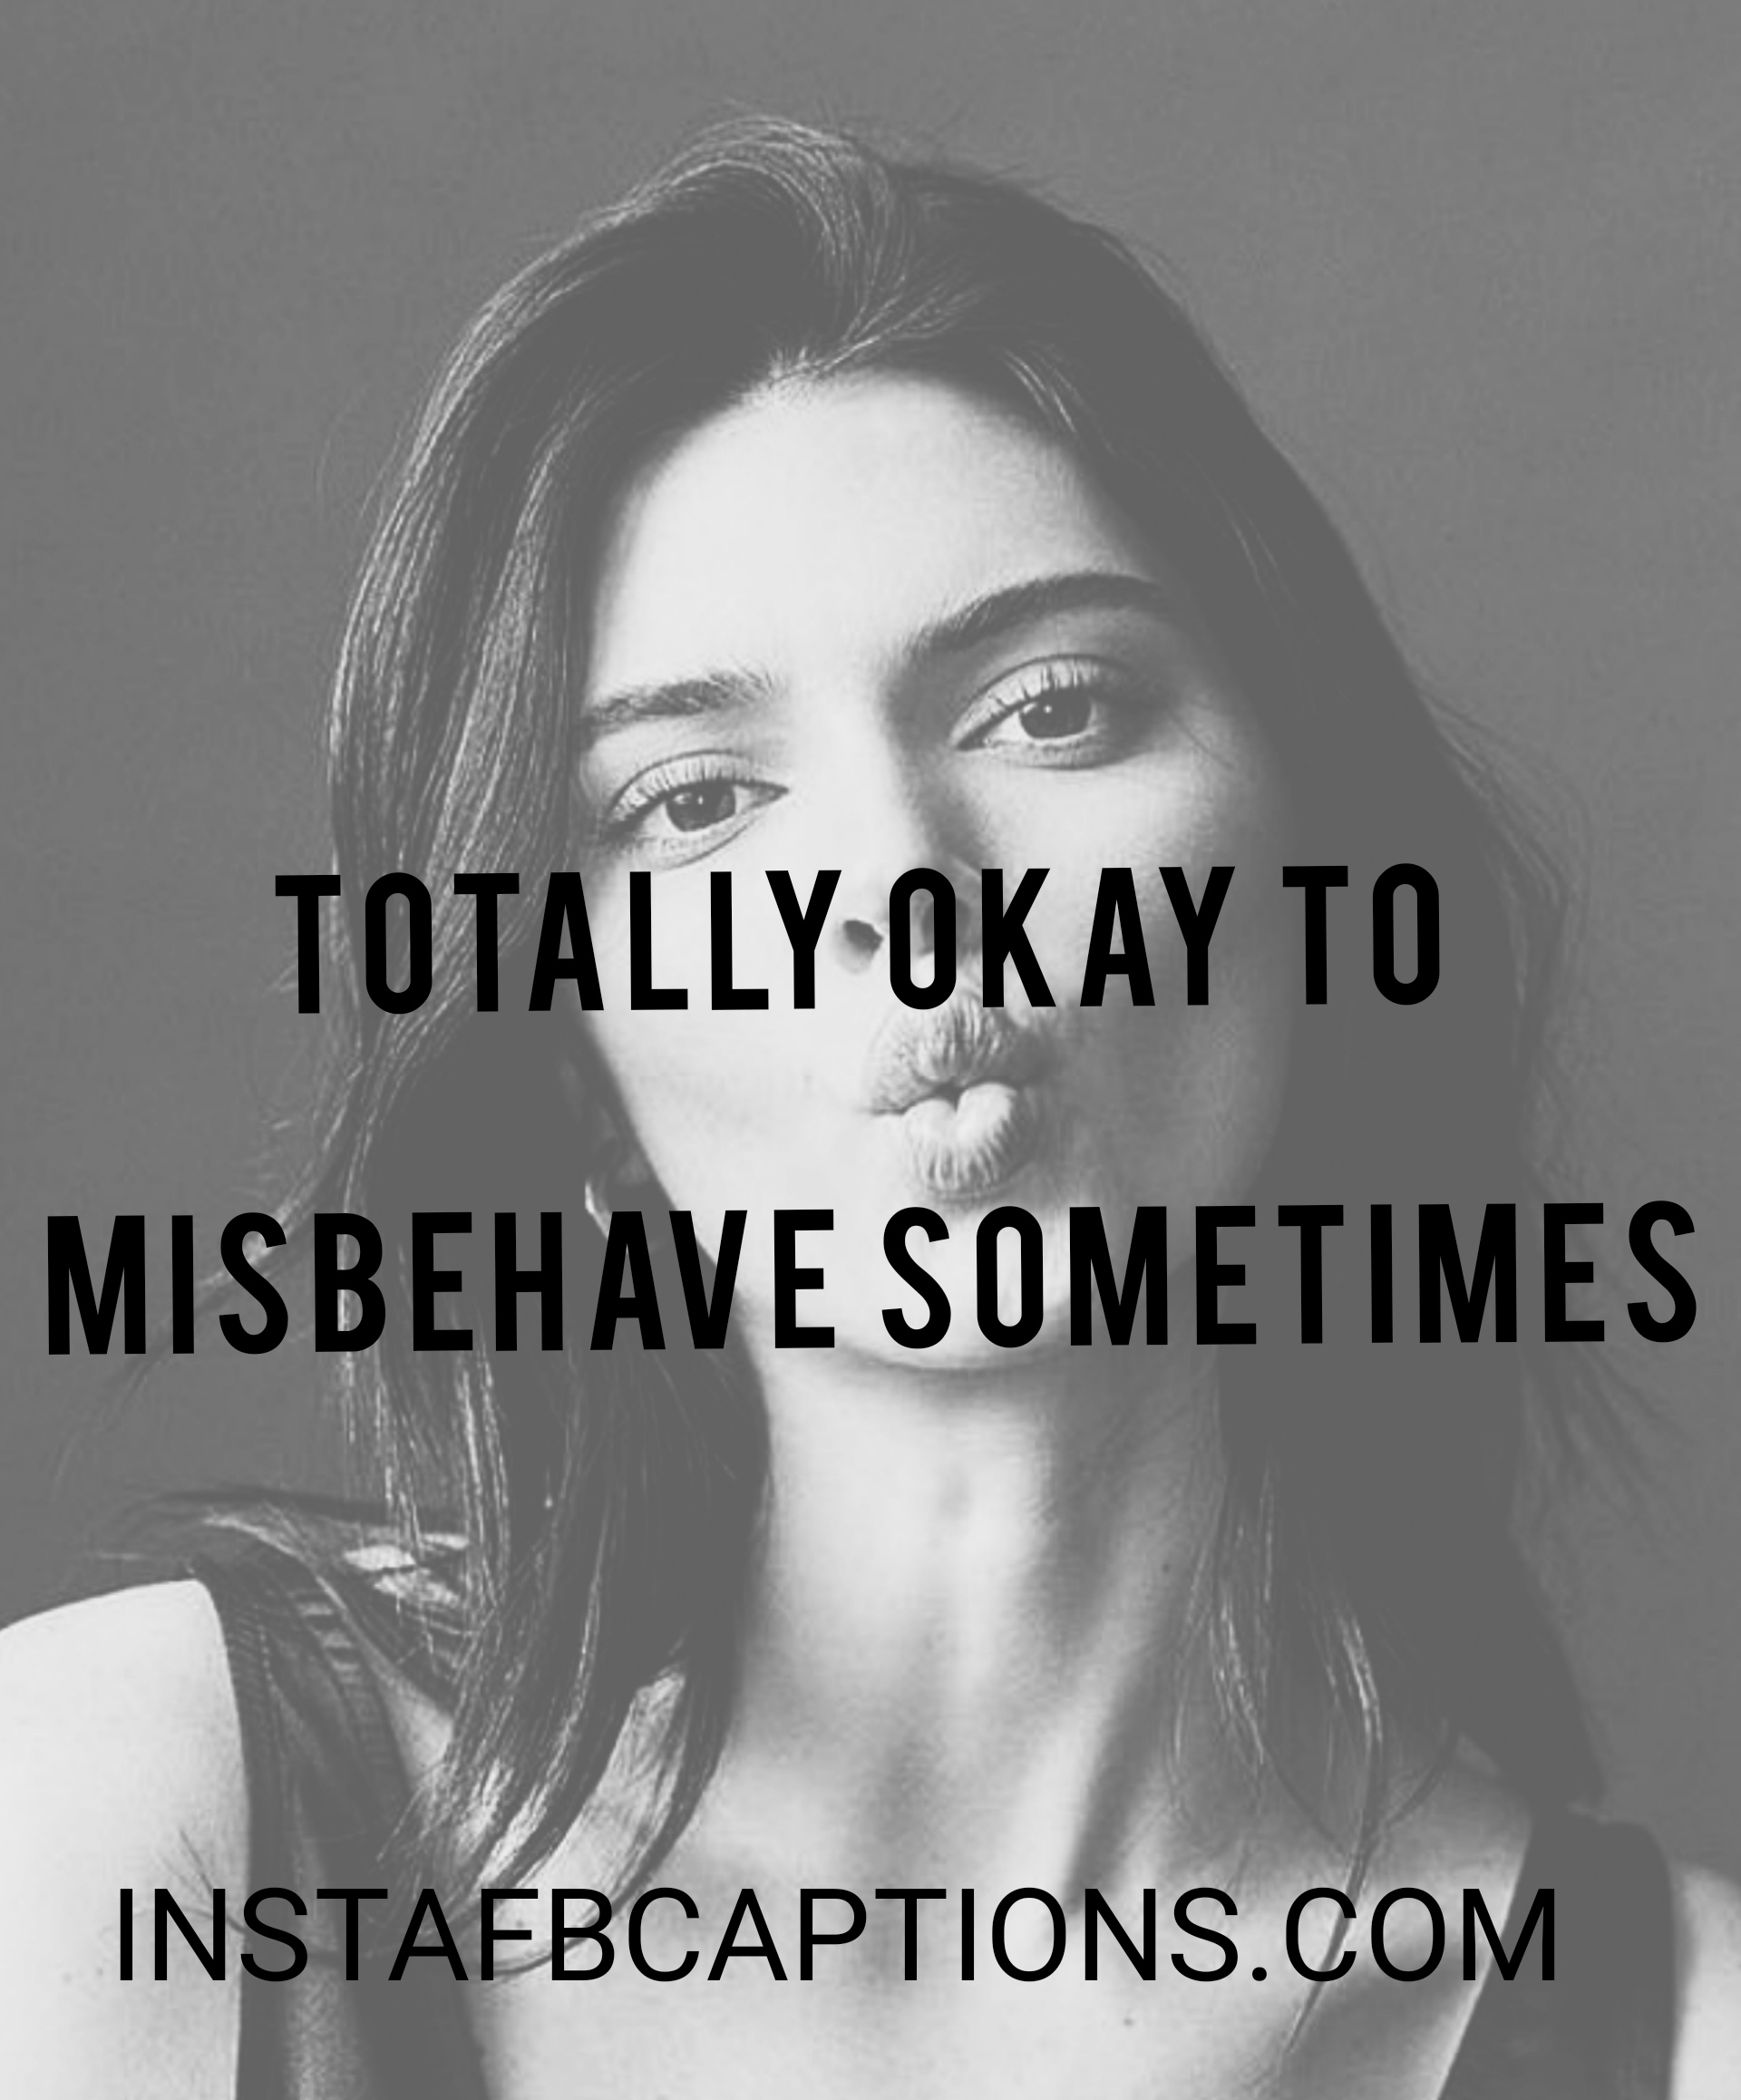 Totally Okay To Misbehave Sometimes  - Totally okay to misbehave sometimes - Standing pose captions|(side look attitude model)